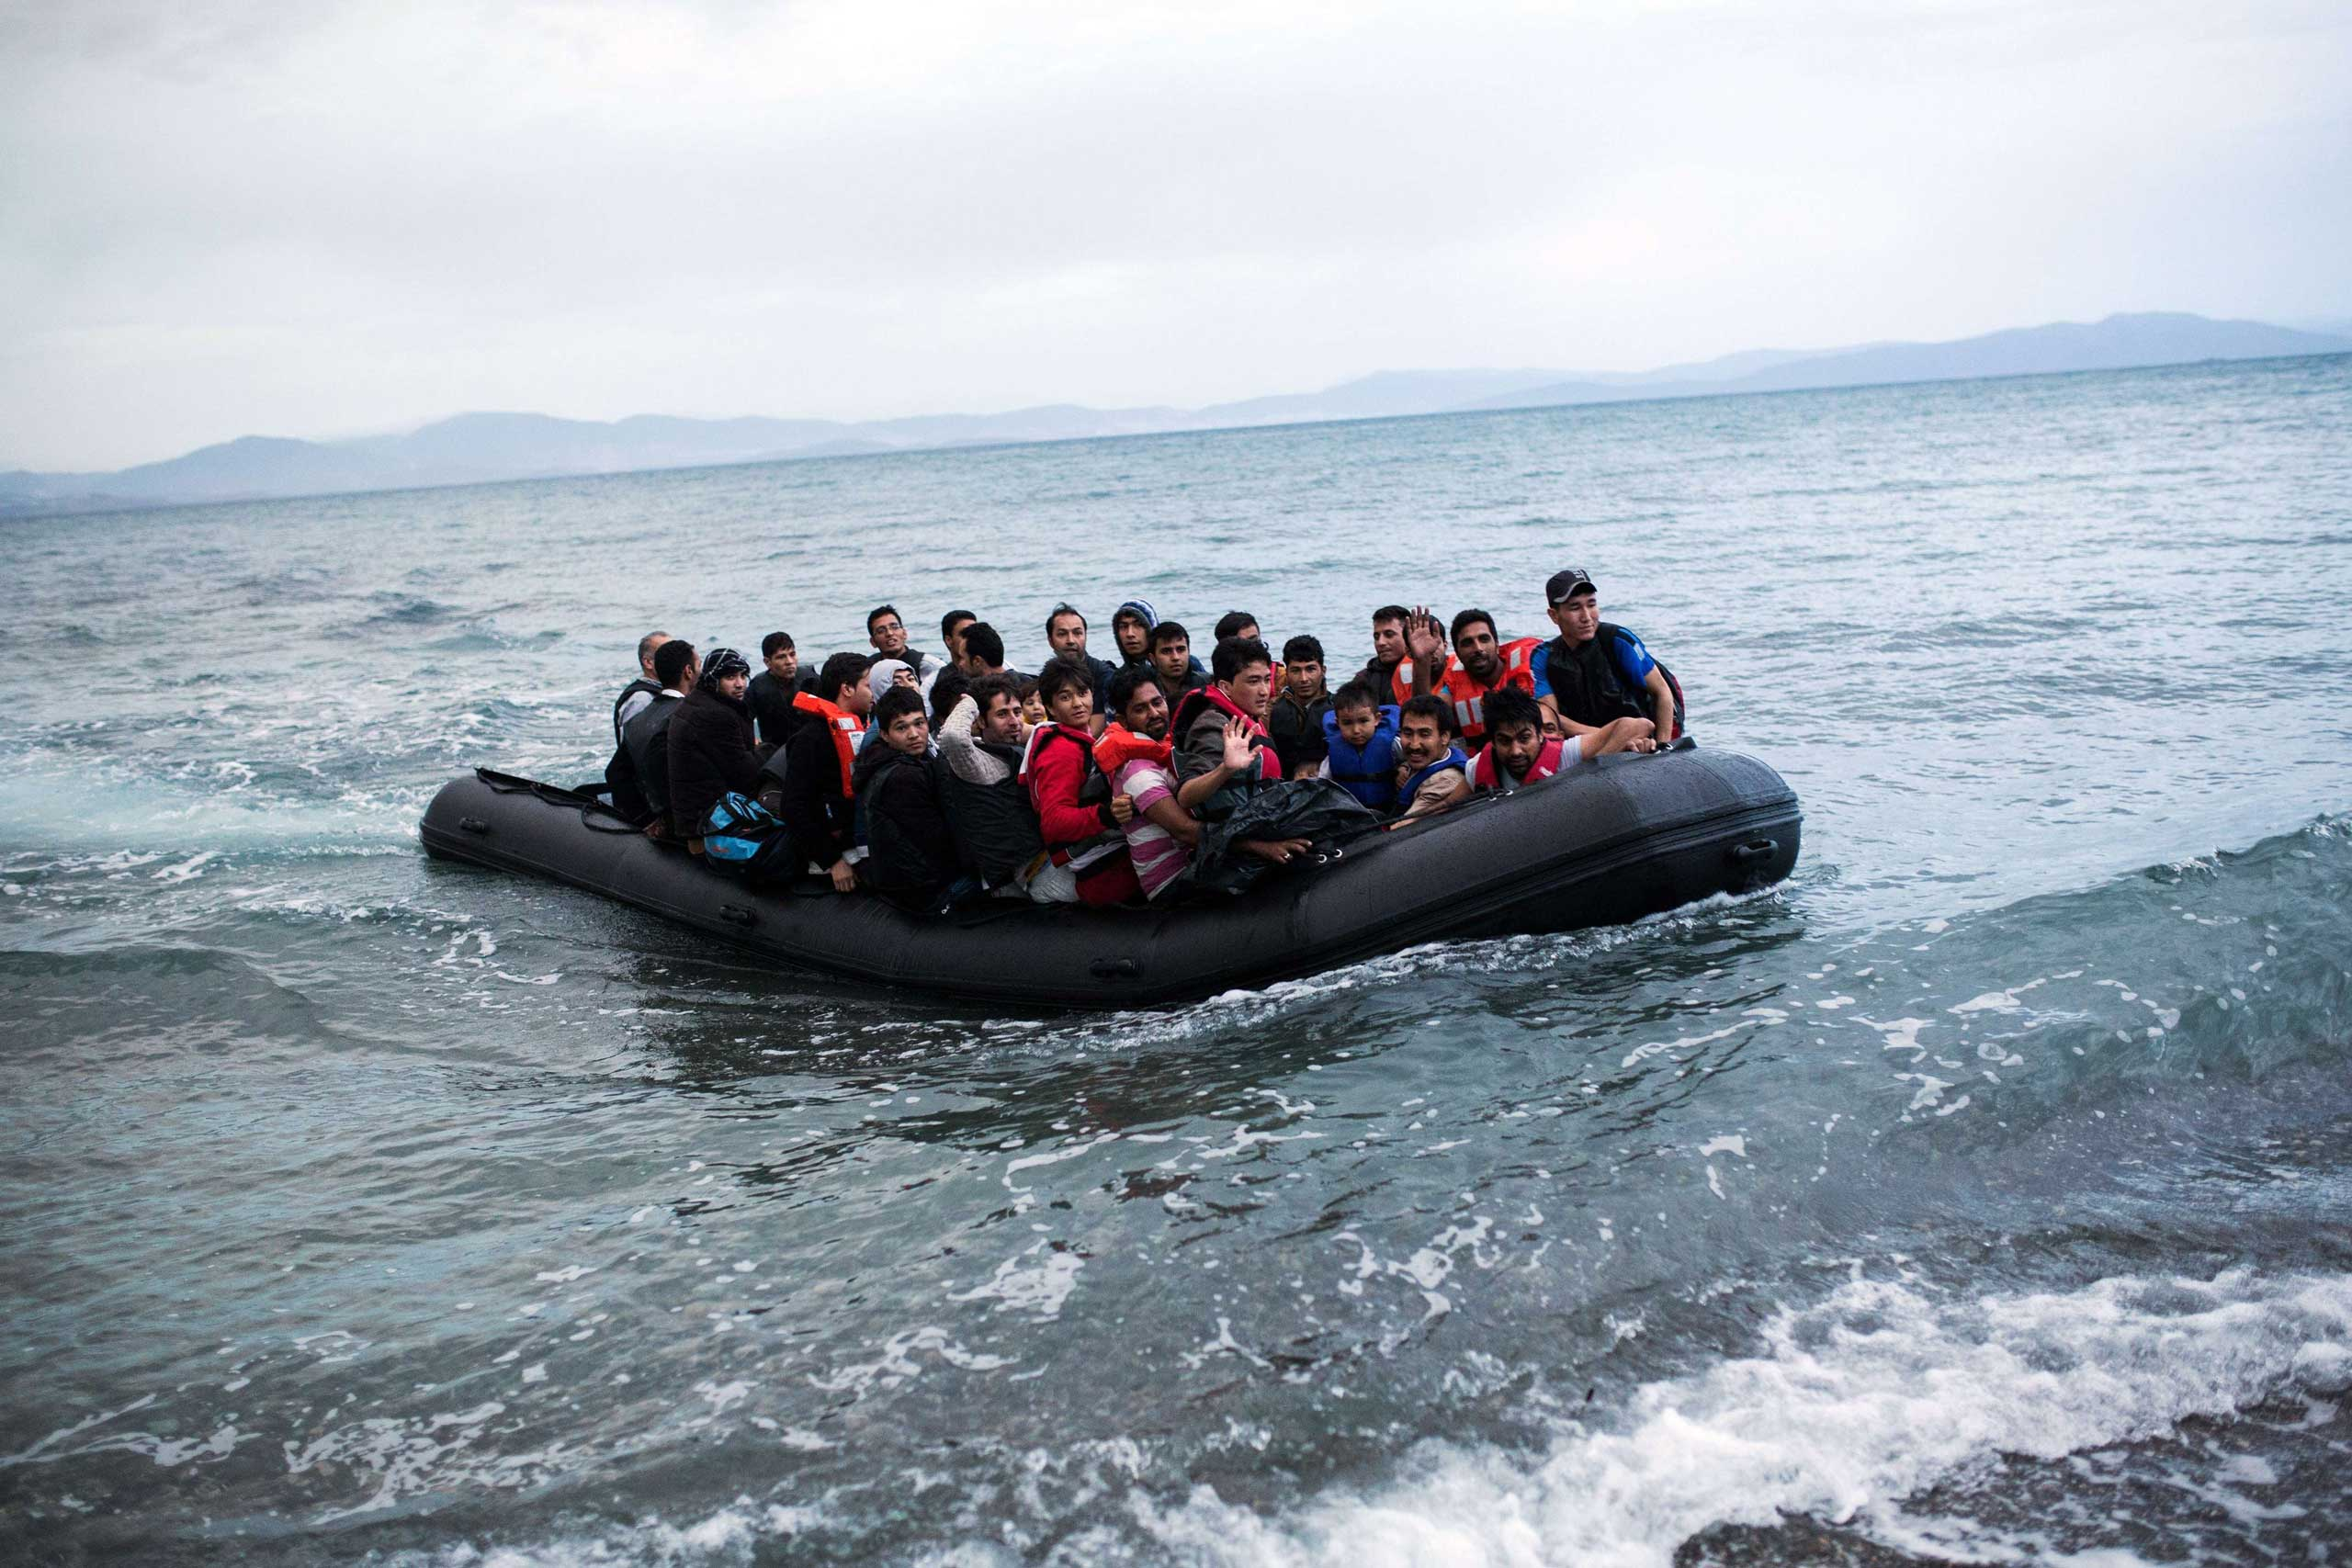 A dinghy overcrowded with Afghan migrants arrives on the Greek island of Kos, after crossing a part of the Aegean Sea between Turkey and Greece, on May 27, 2015.